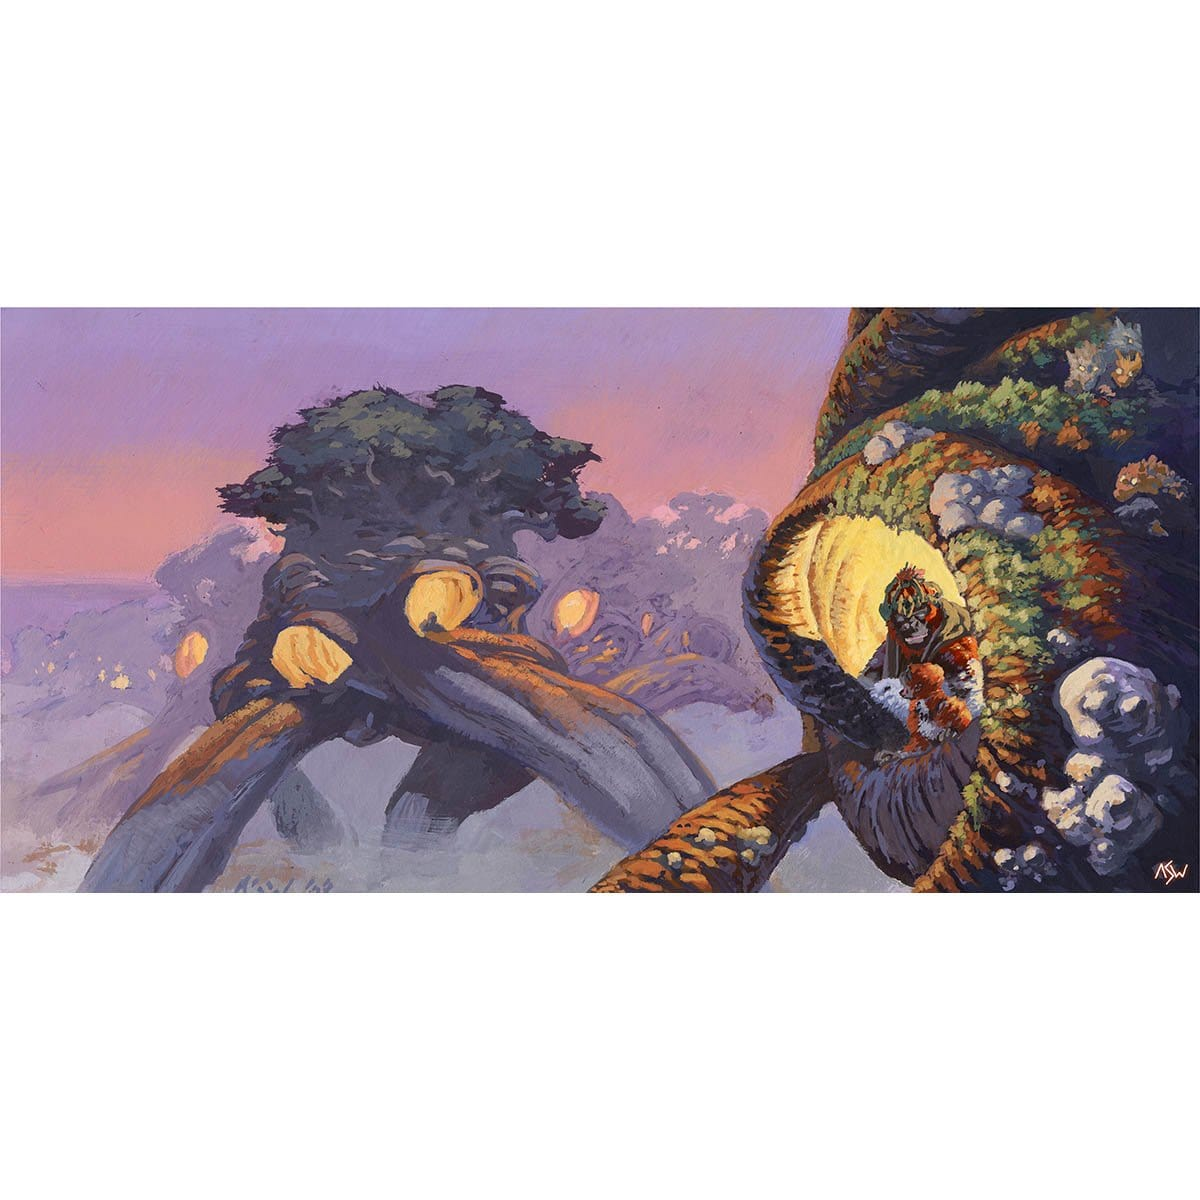 Treetop Village Print - Print - Original Magic Art - Accessories for Magic the Gathering and other card games